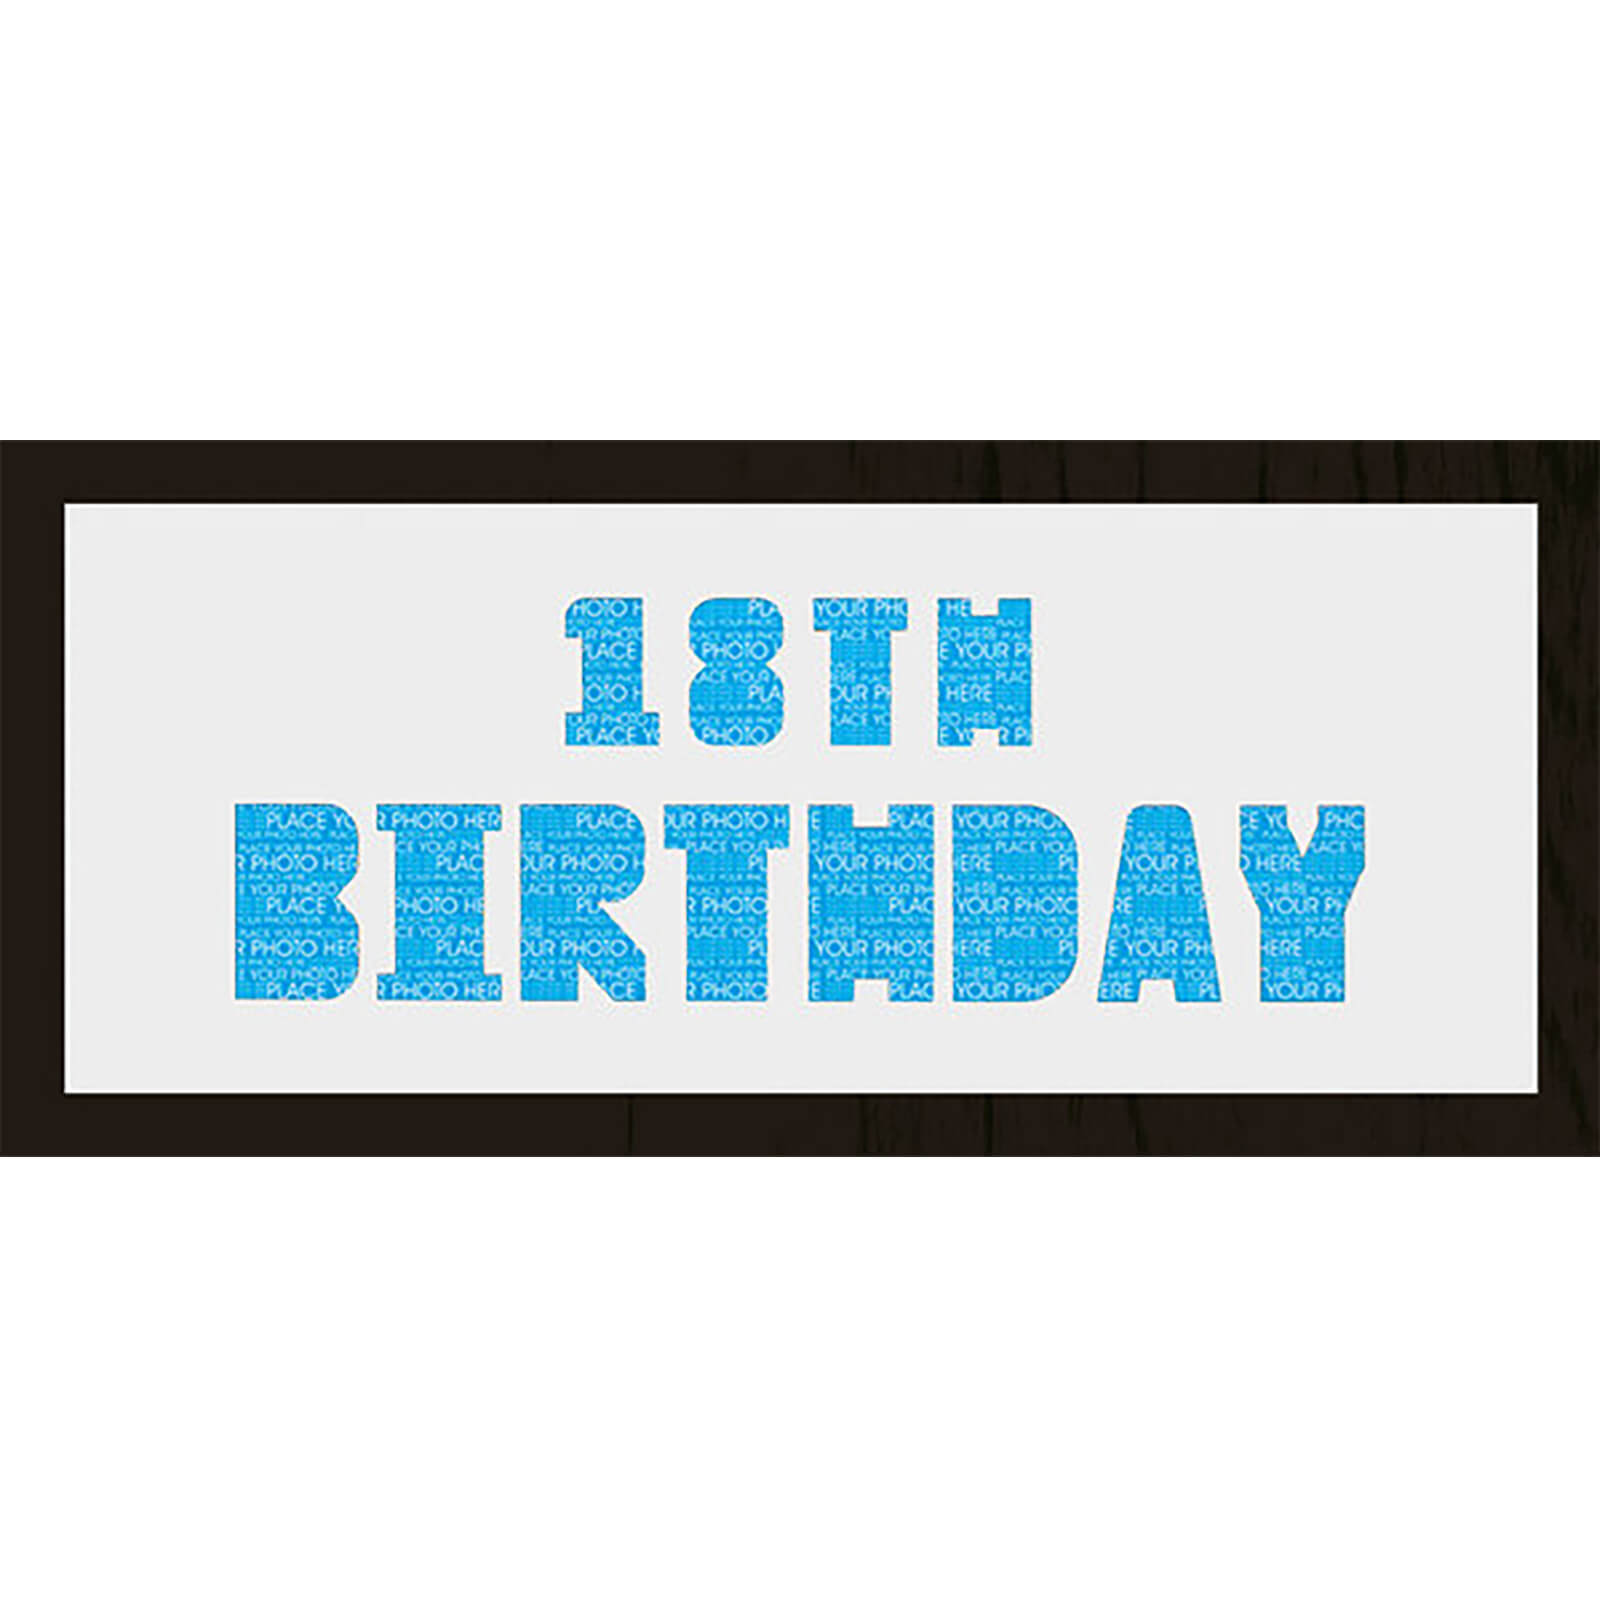 "GB Cream Mount 18th Birthday Photo Font - Framed Mount - 12"""" x 30"""